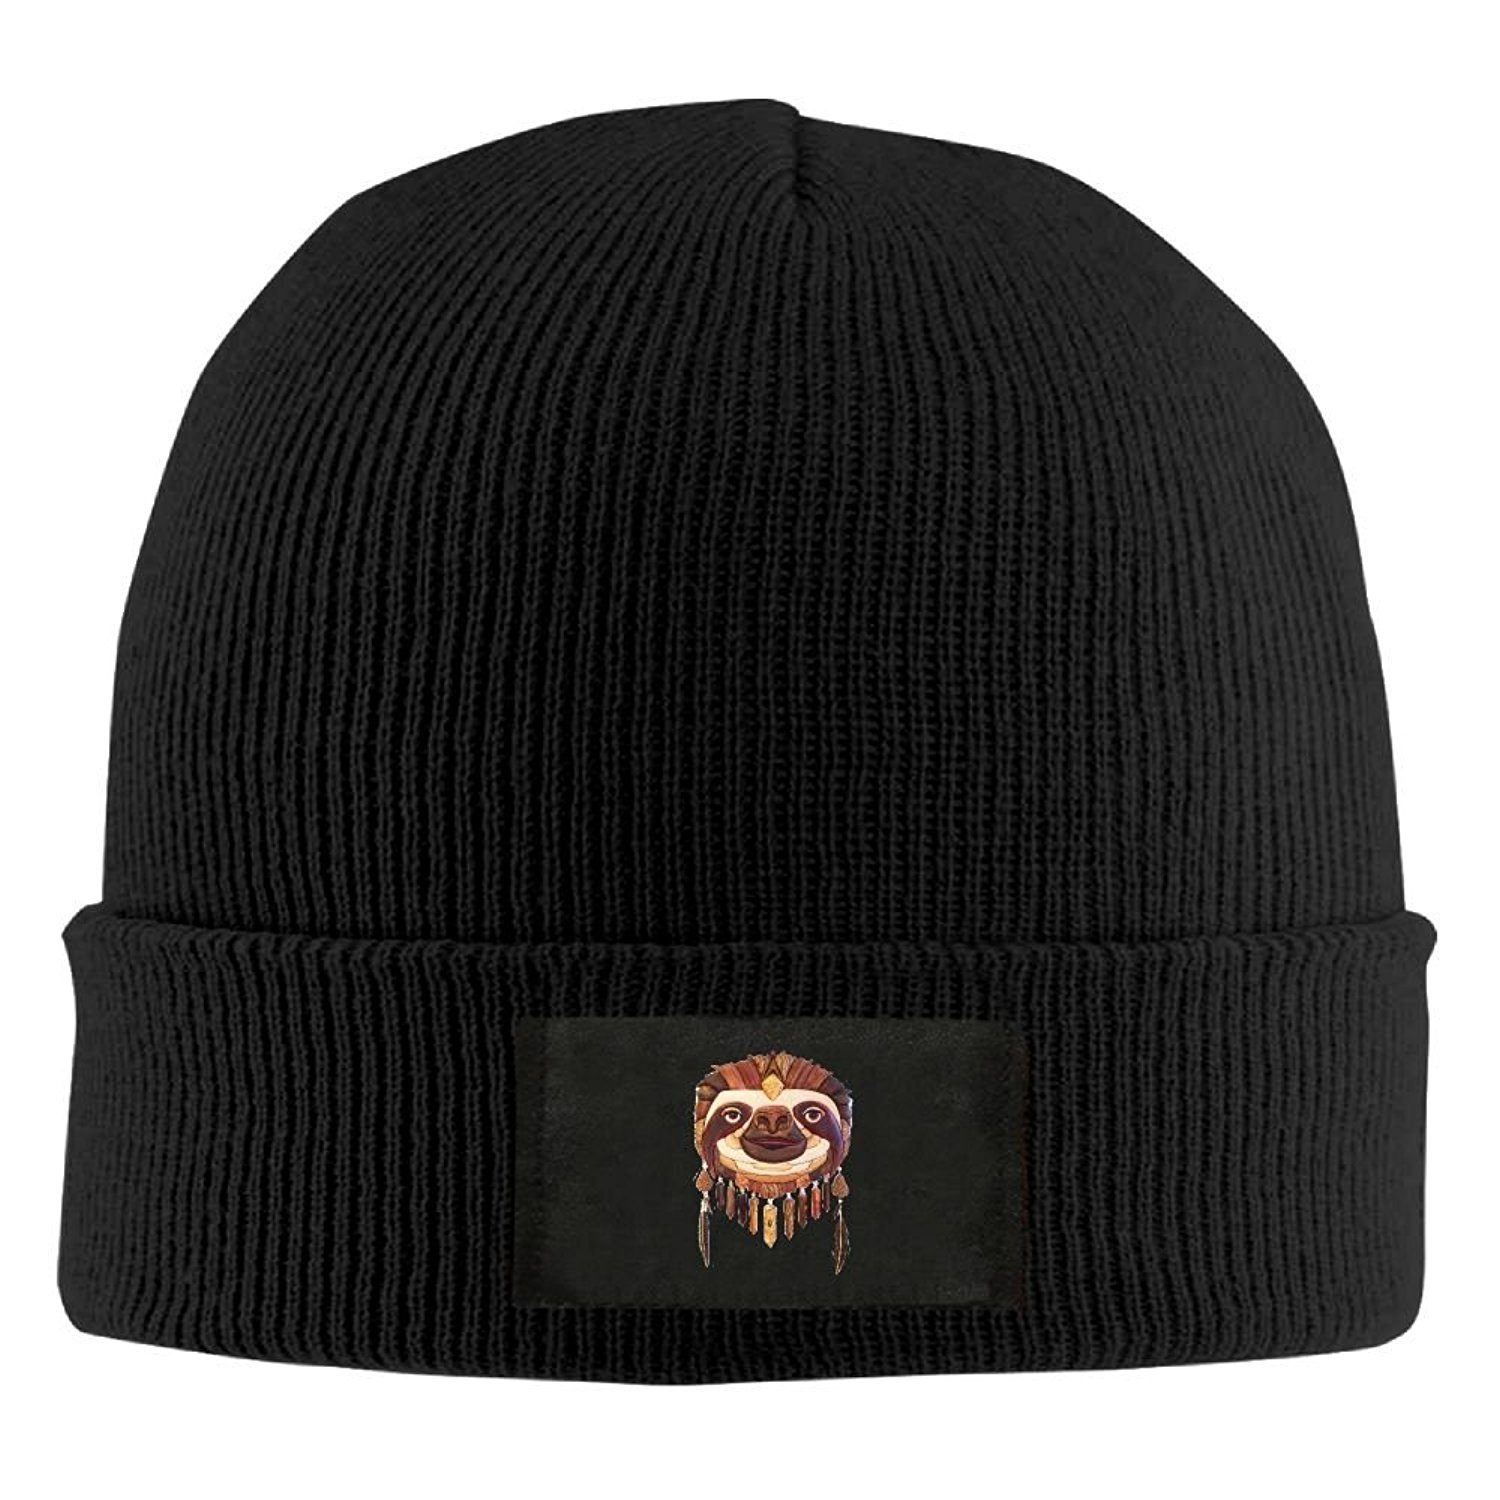 c80350ff75c Get Quotations · WLF Unisex Indonesia Style Sloth Fashion Warmth Four  Colors Beanie Hats Skull Cap